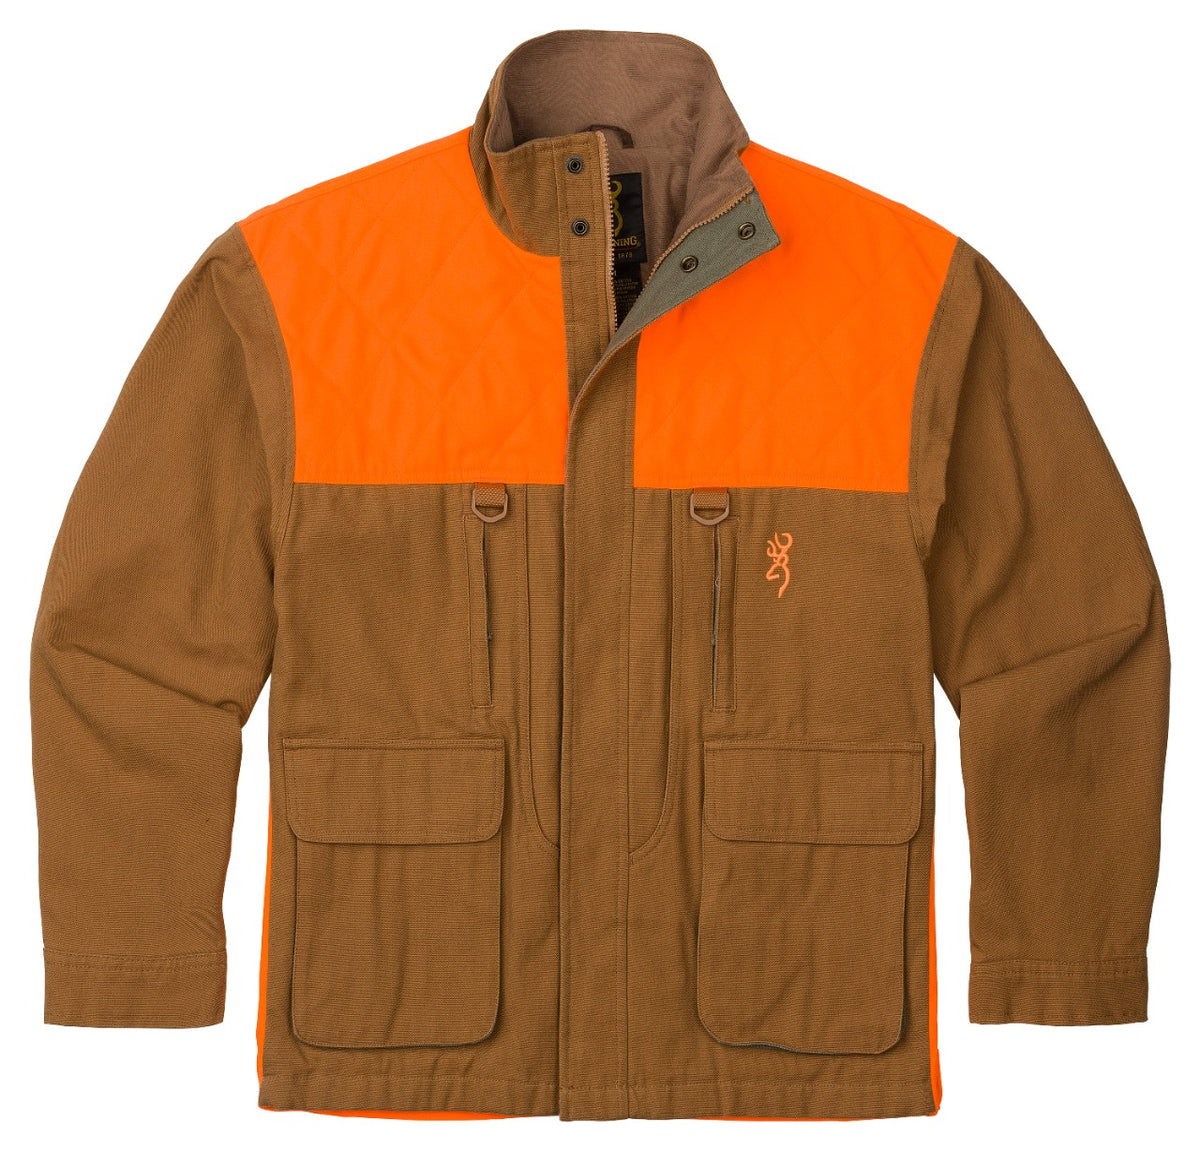 JACKET, UPLAND,TAN W/O EMB,3XL